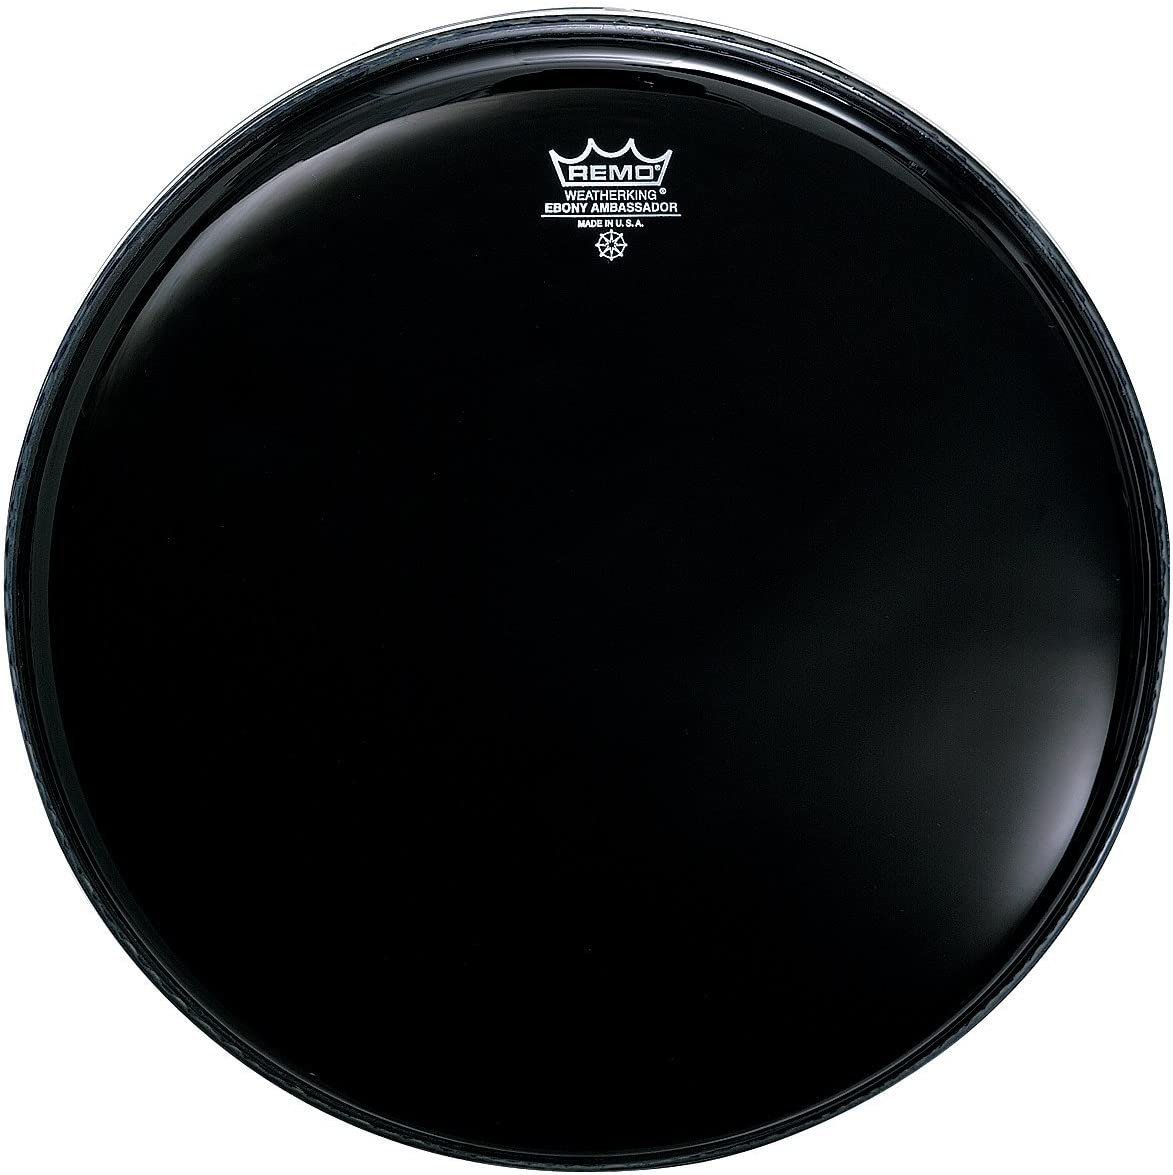 Remo Denver Mall Ebony Opening large release sale Ambassador 18 Head in.